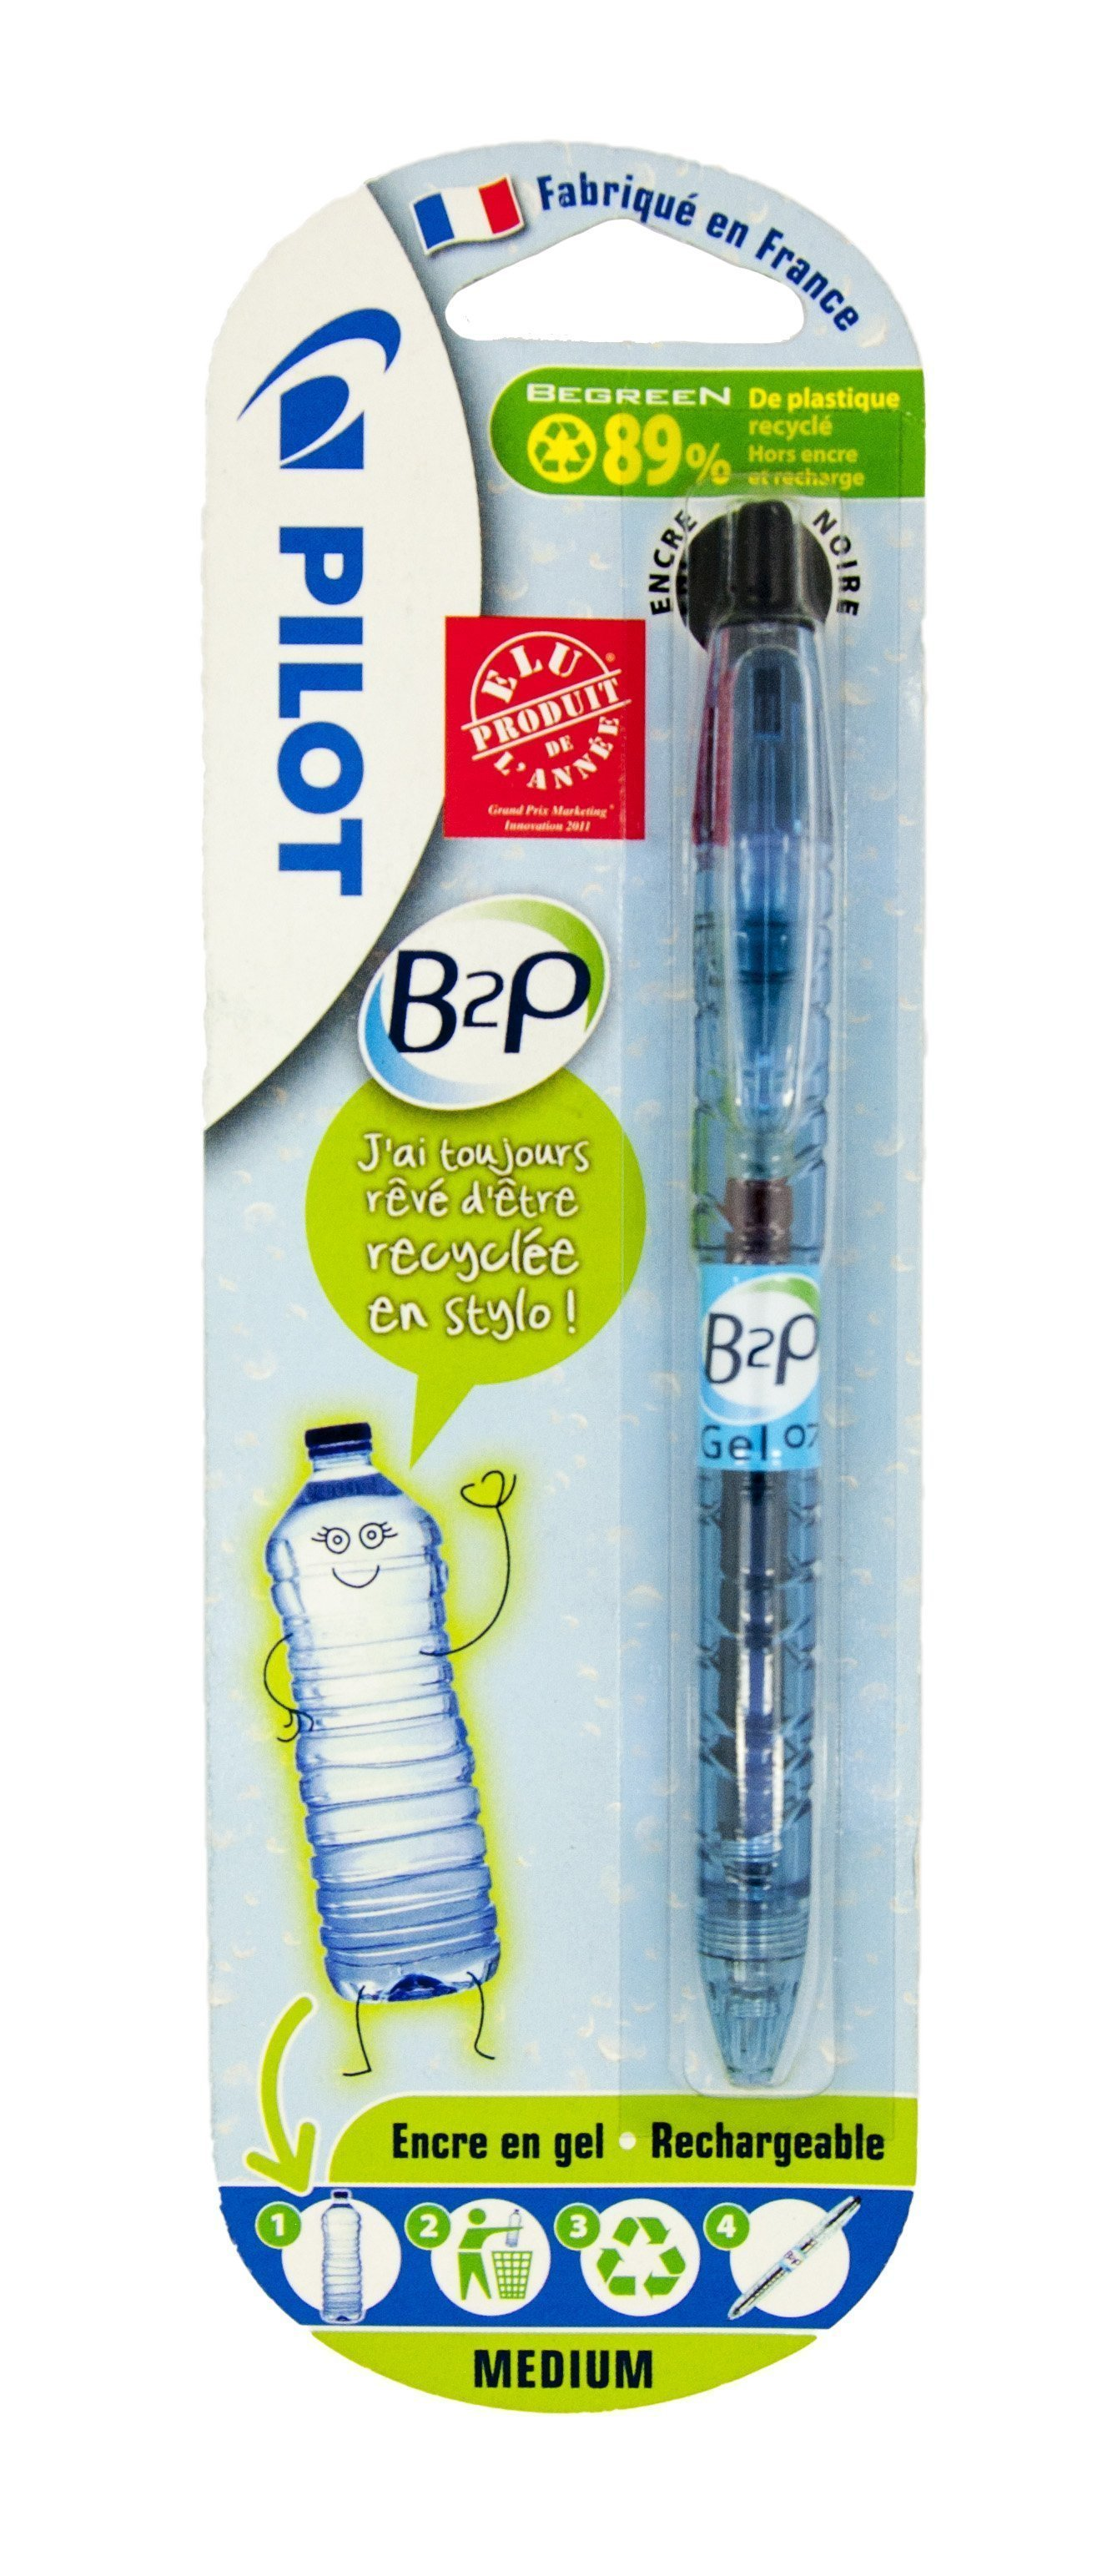 PILOT B2P ROLLER BALL PEN 0.7MM BLACK BLISTER